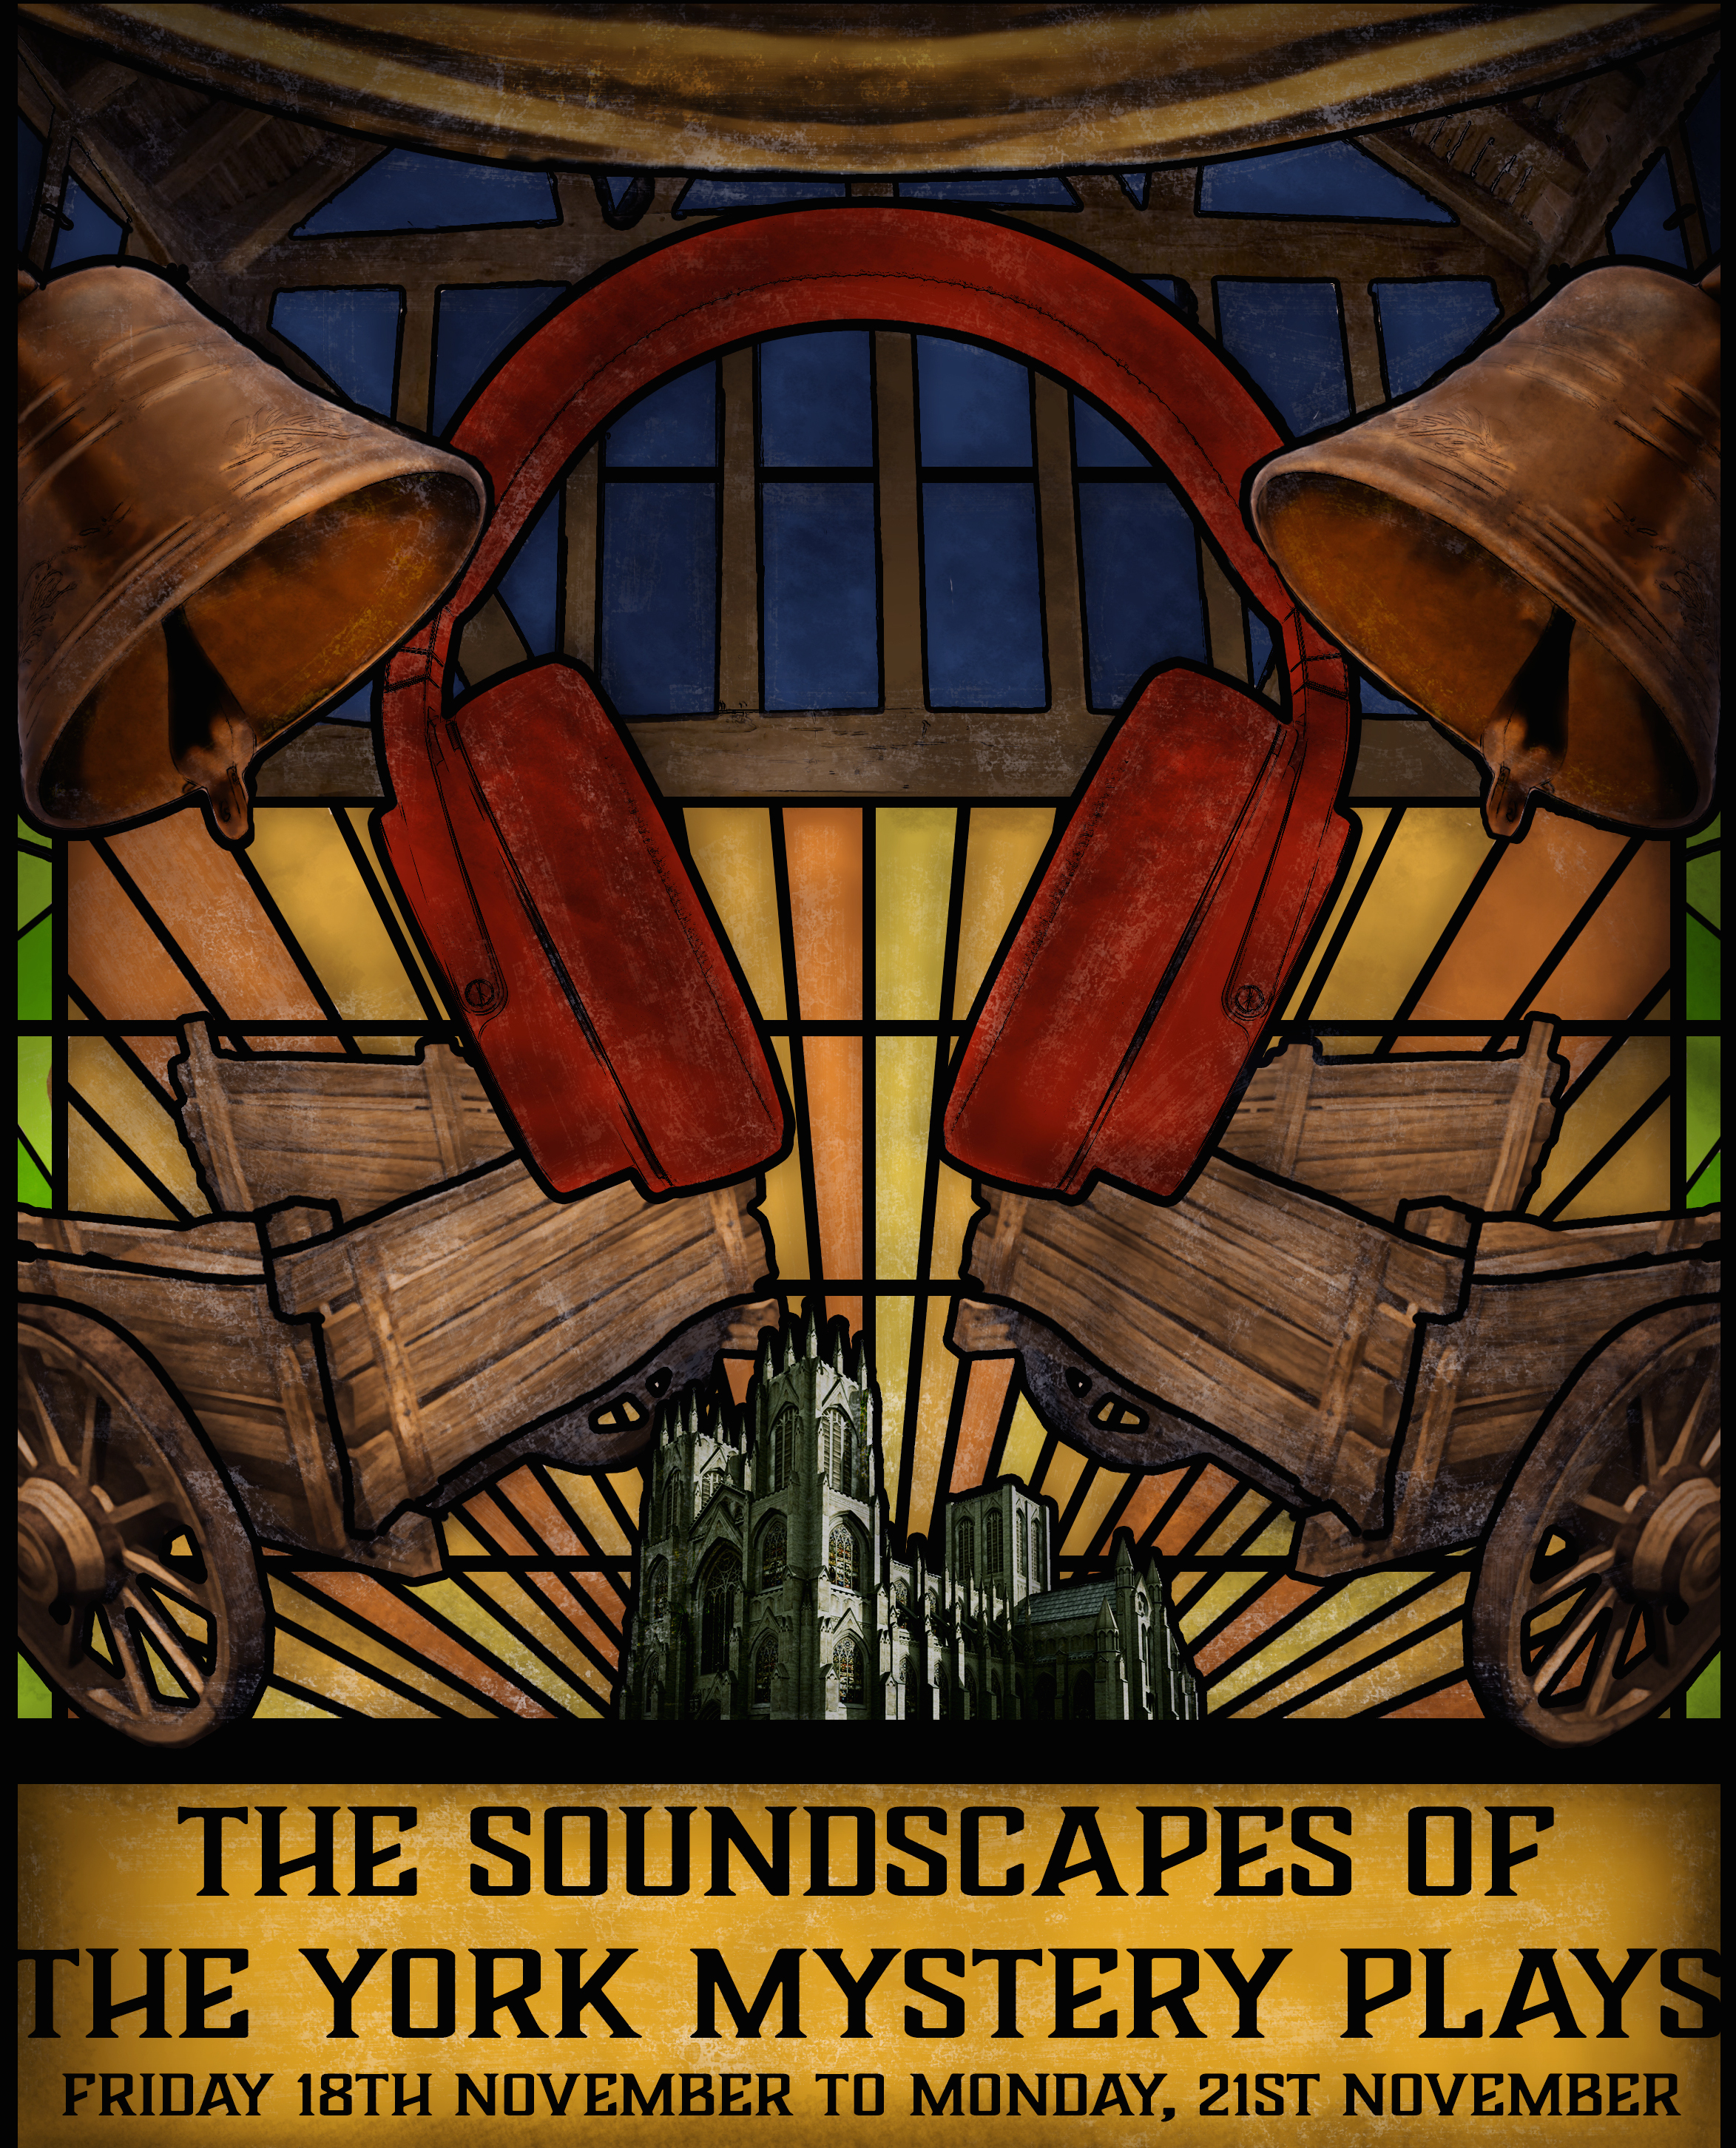 The Soundscapes of York Mystery Plays